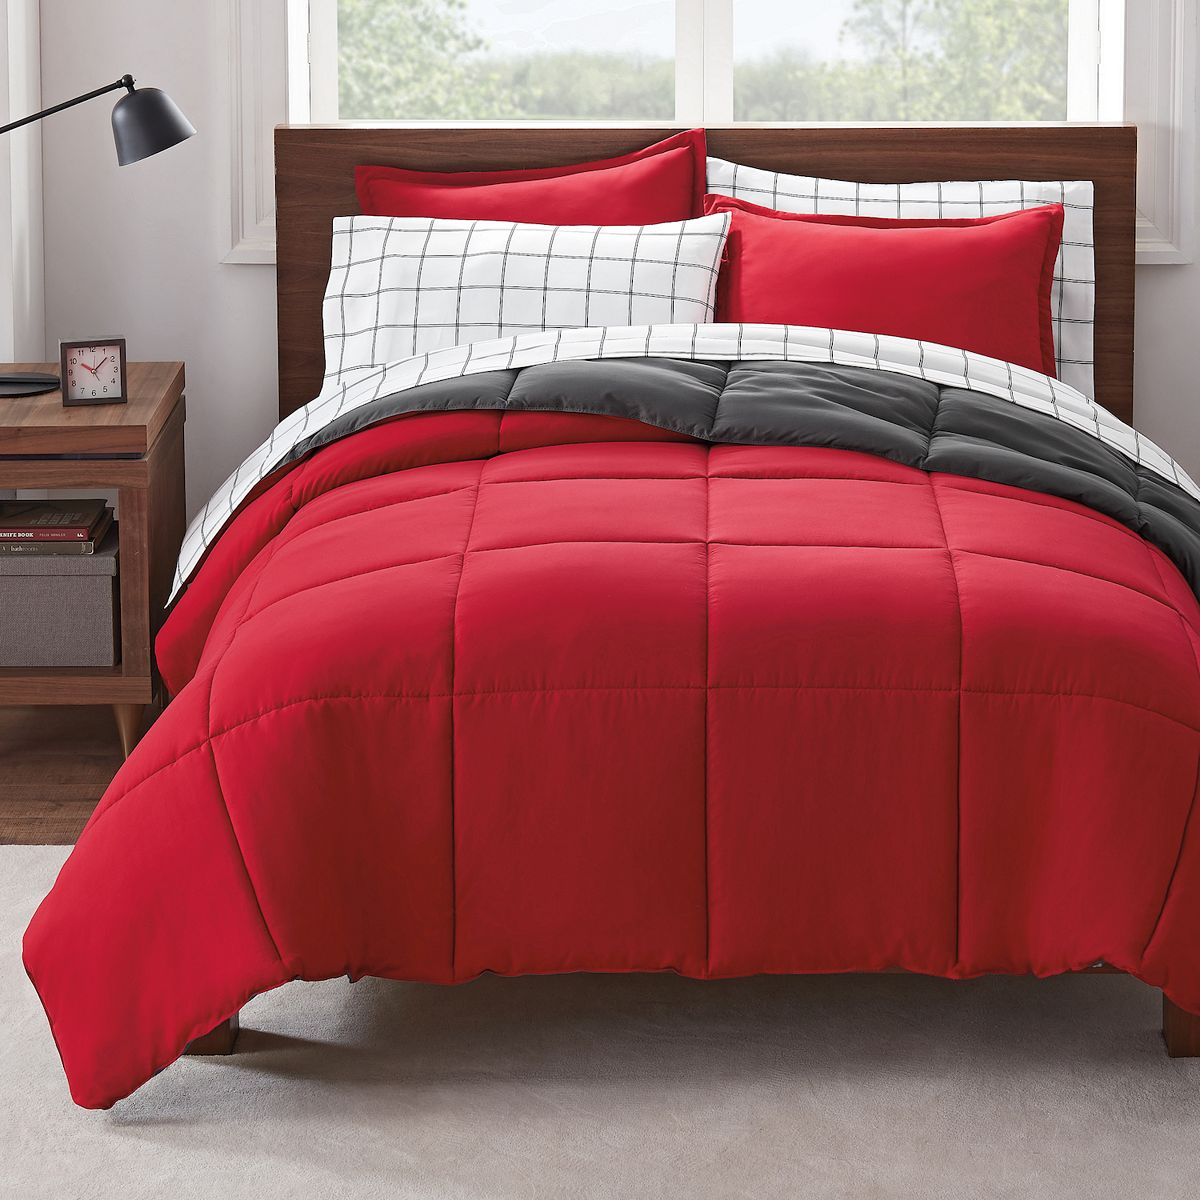 Serta® Simply Clean Antimicrobial Reversible Comforter Set with Sheets $22.50